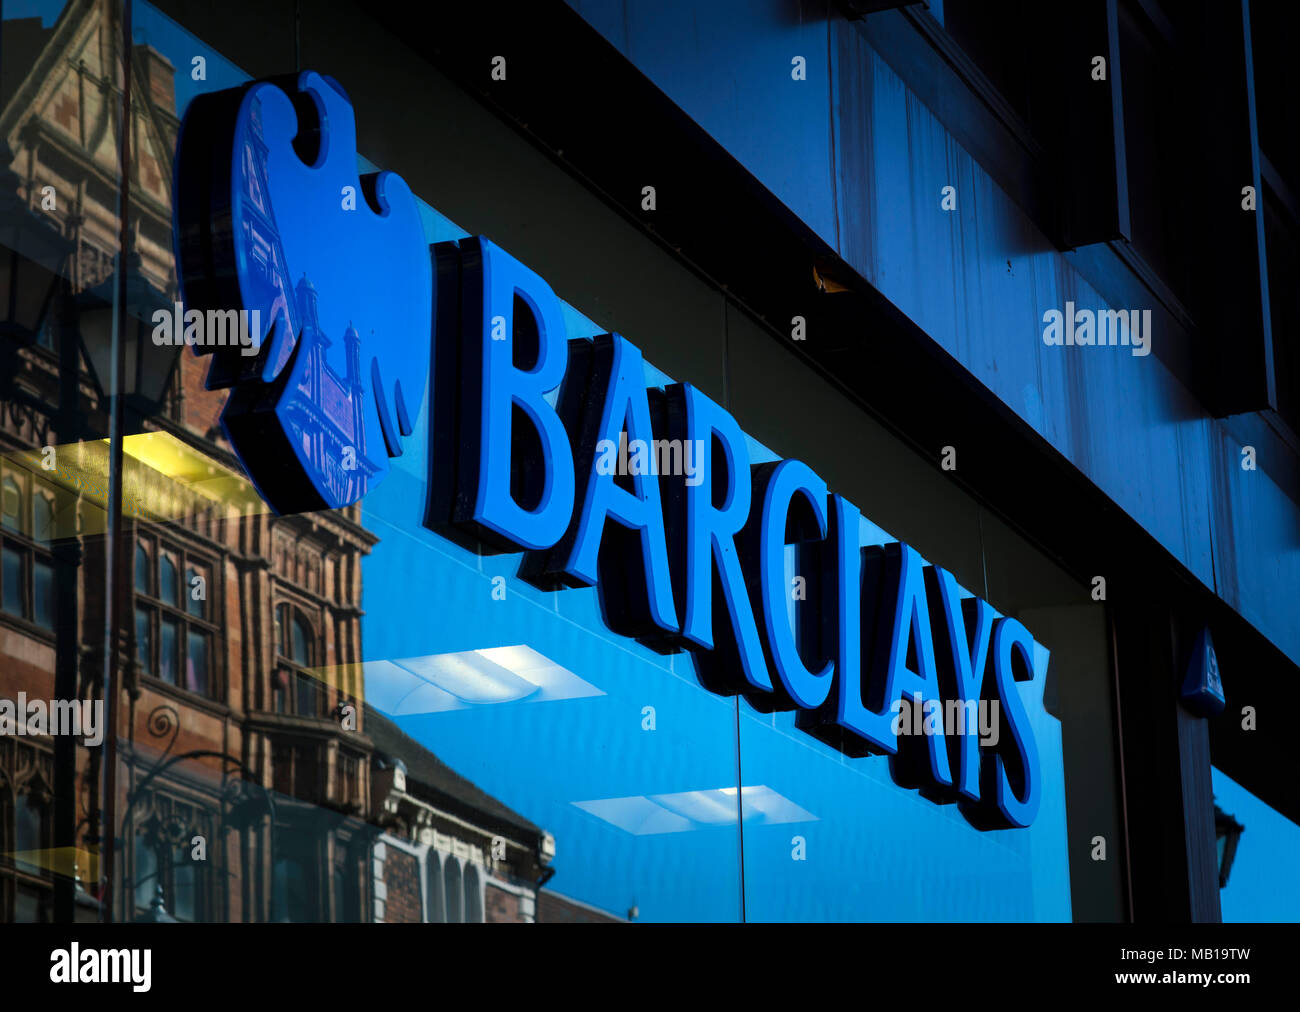 Barclays bank sign and logo, High Street, Lincoln, Lincolnshire, UK - 5th April 2018 - Stock Image